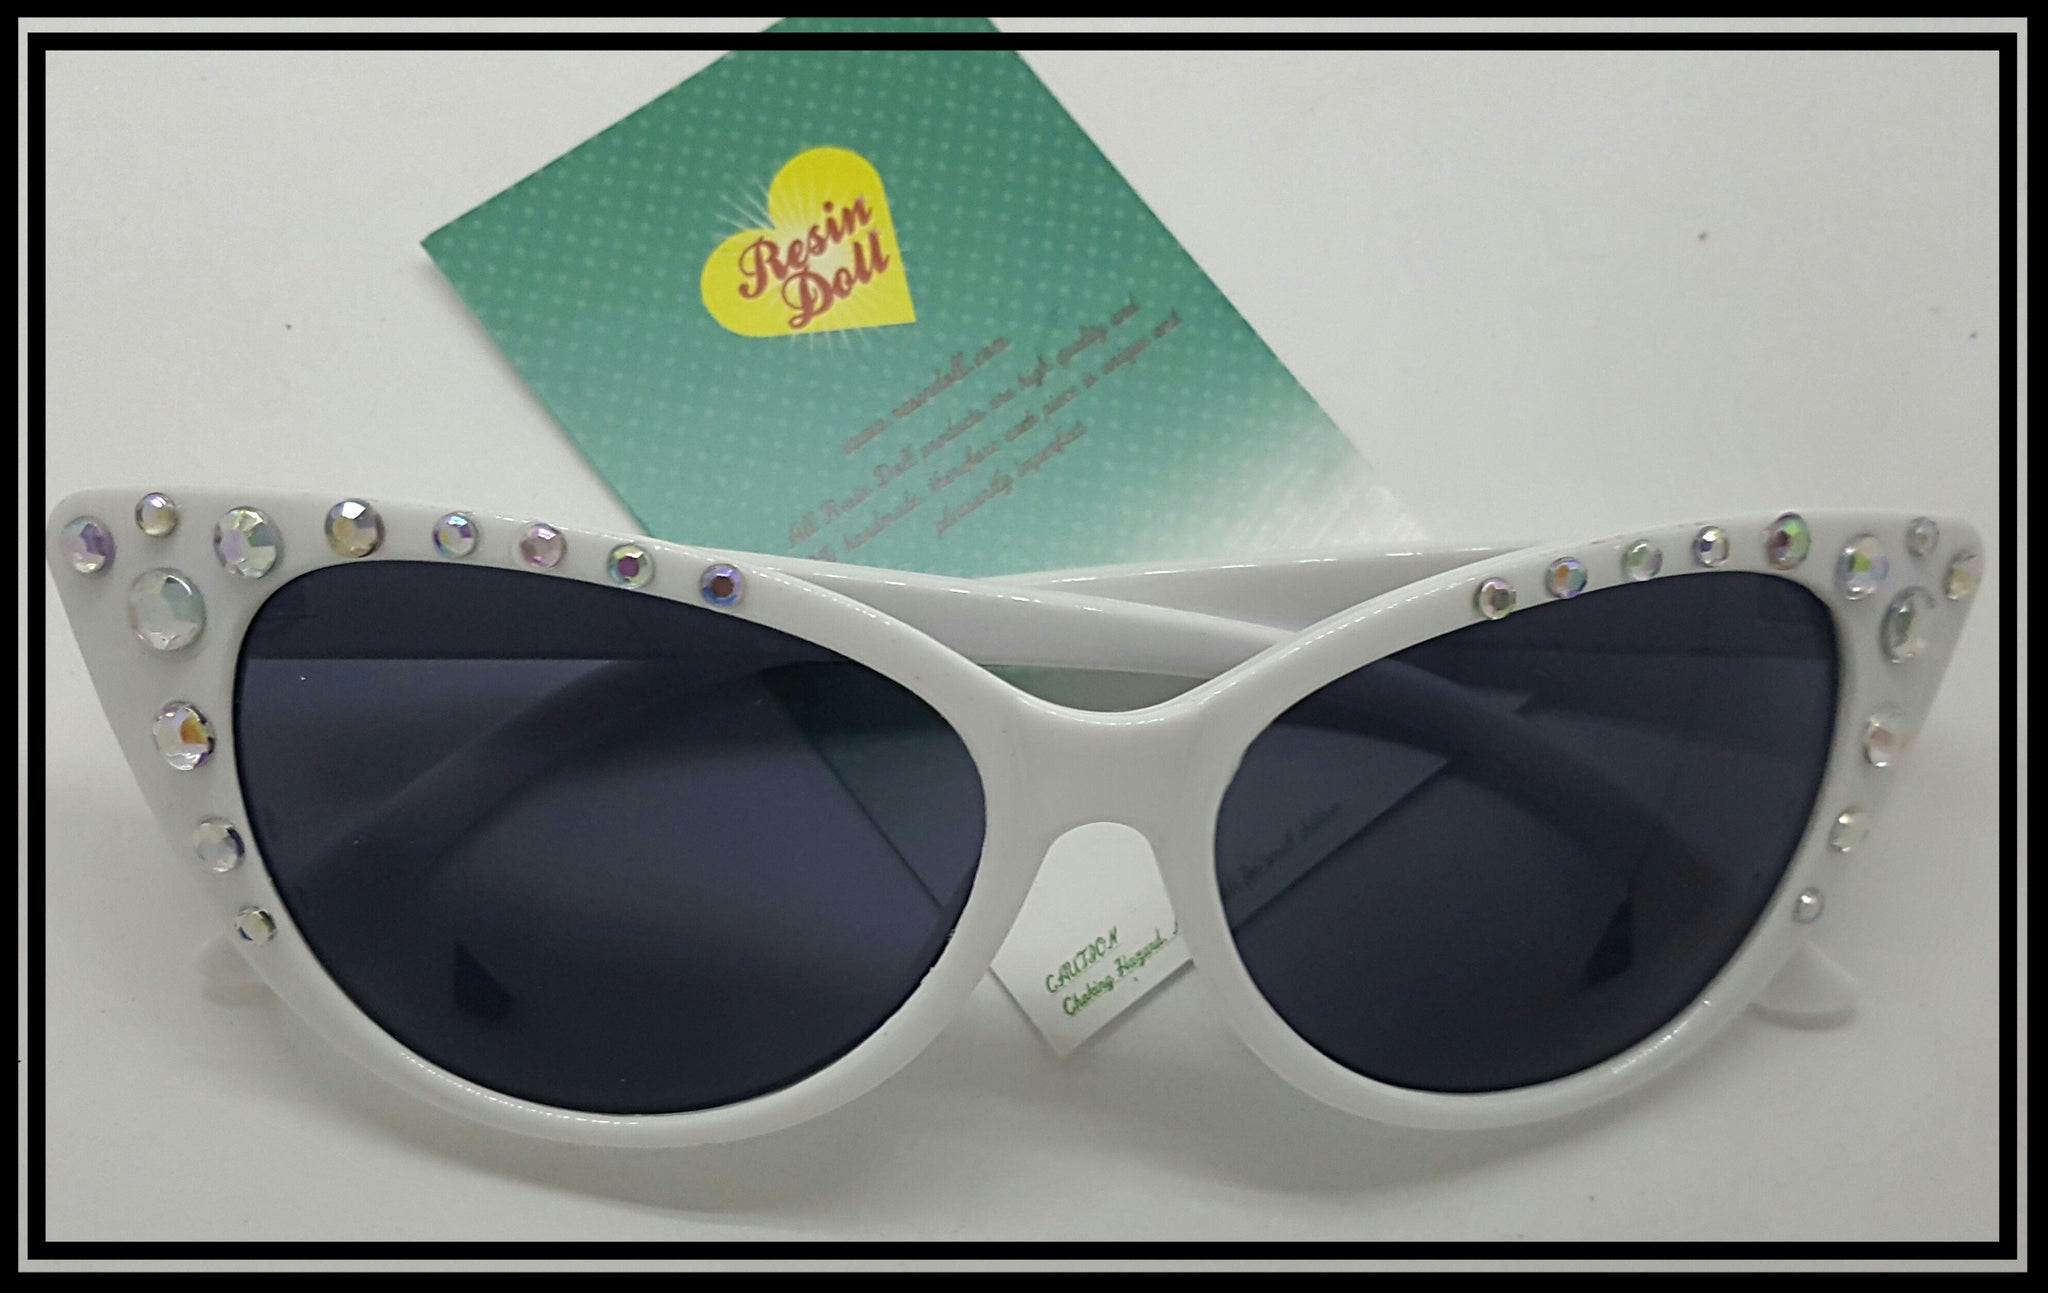 White frame full bling sunglasses